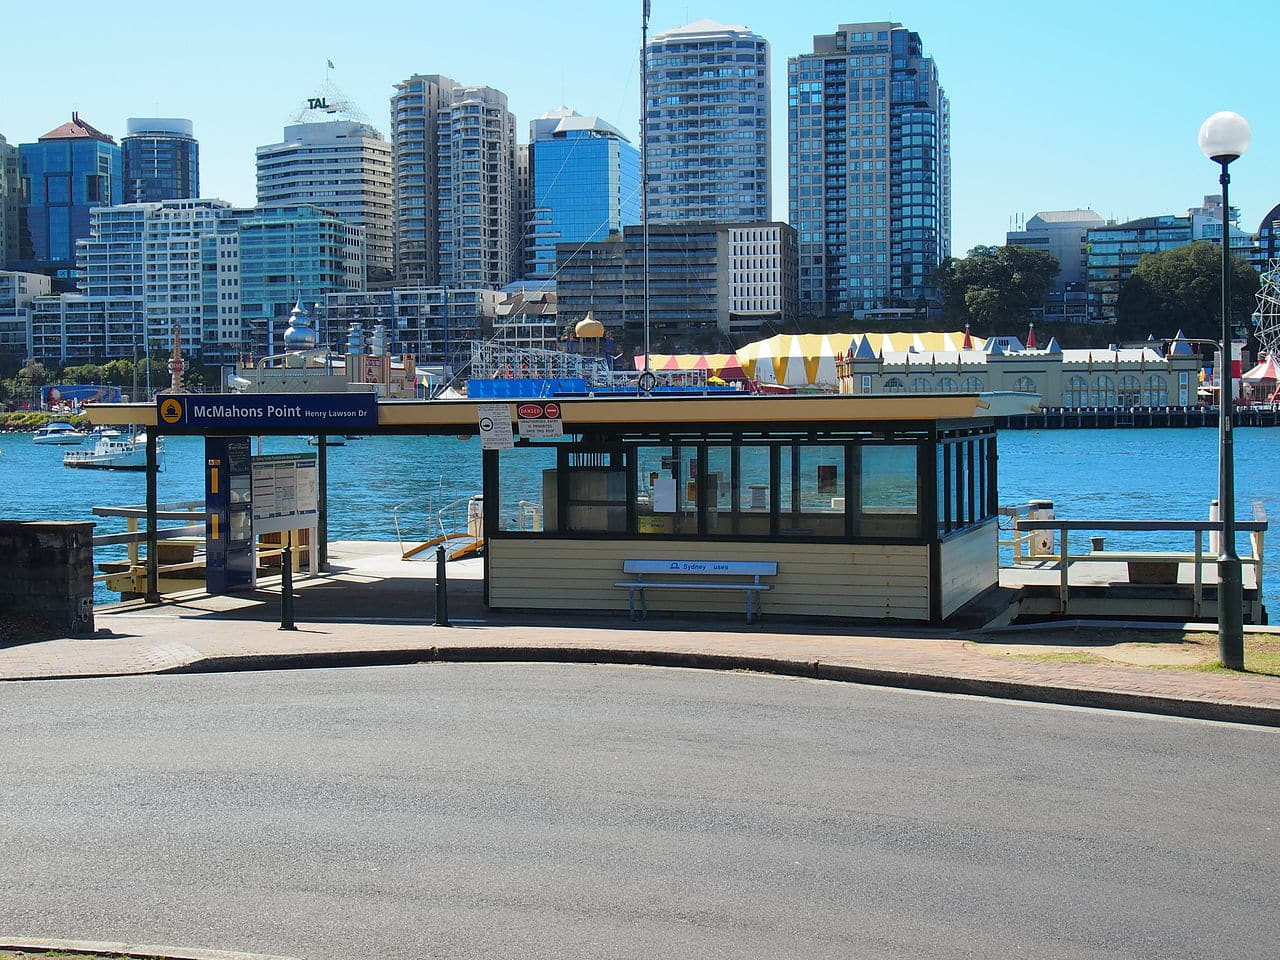 The McMahons Point ferry wharf - NSW